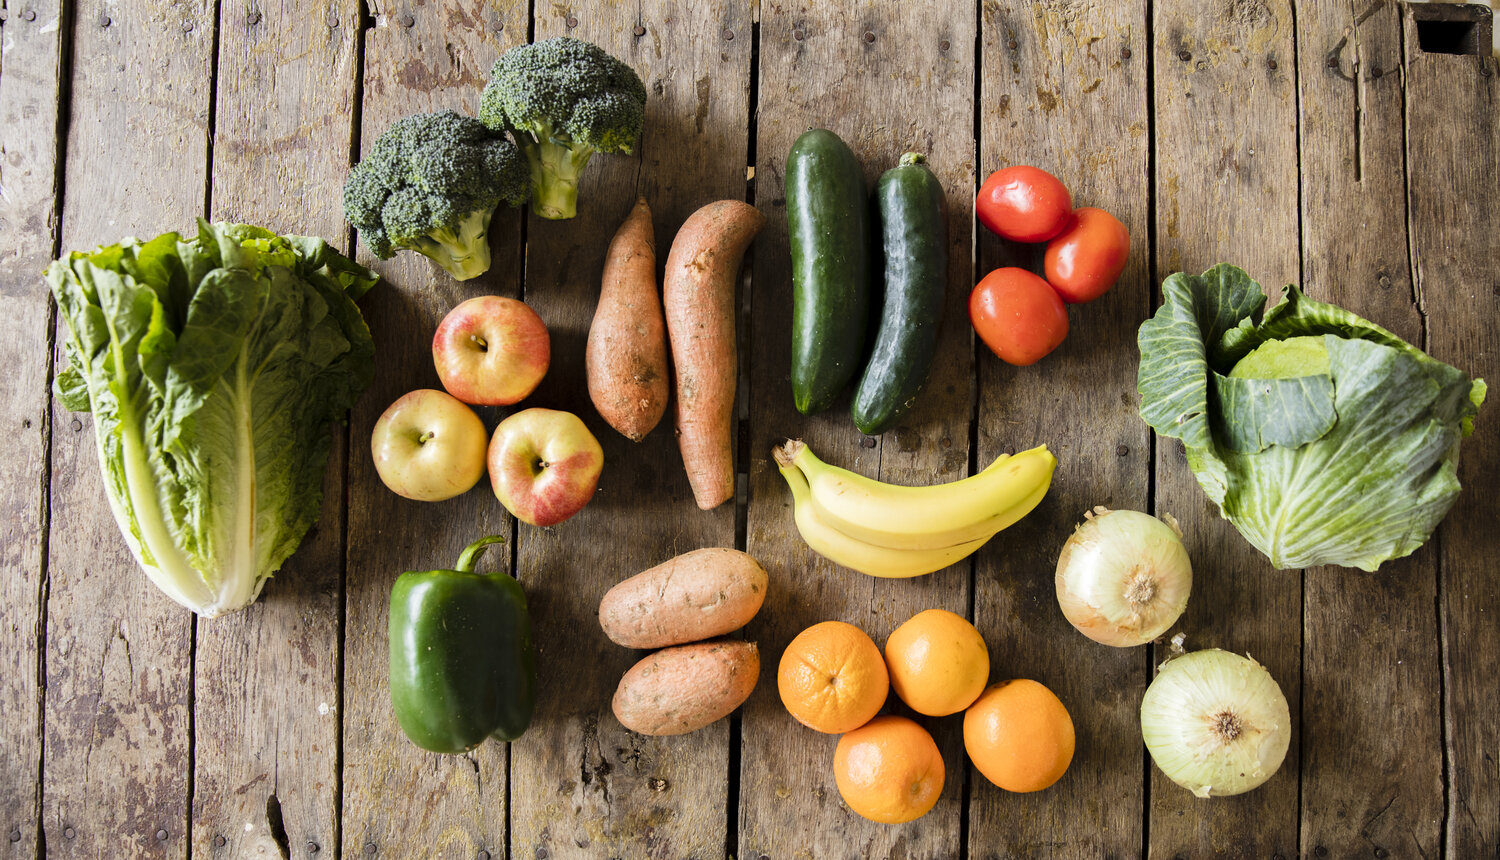 Farmers Box - Family of 4 - Sunday Delivery - $140 Per Week ($10 Delivery Charge)